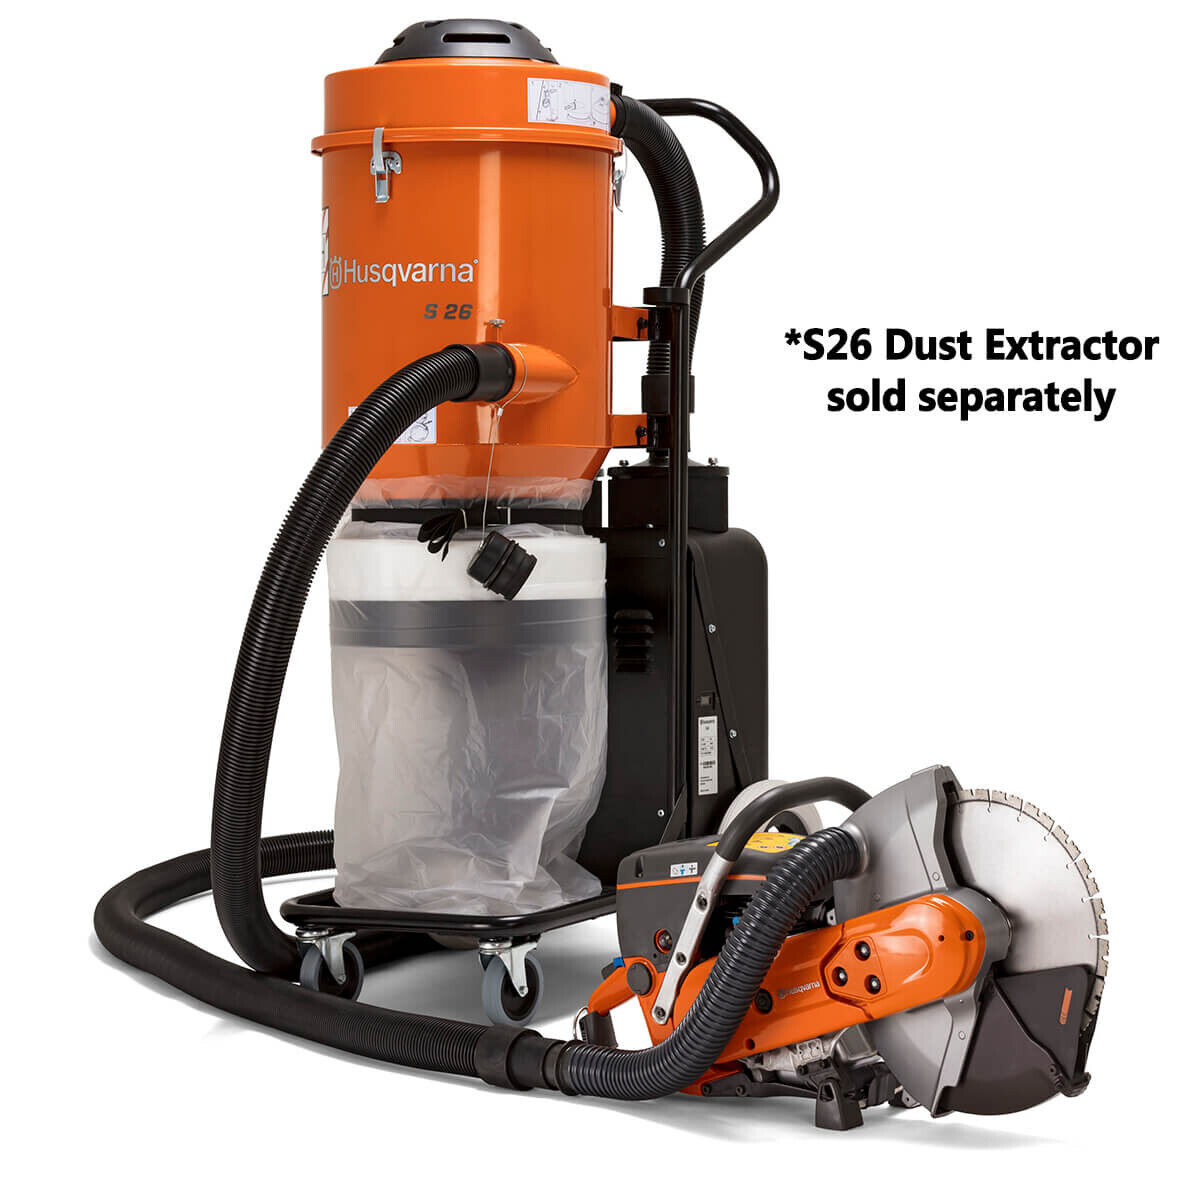 Husqvarna K770 VAC Power Cutter with S26 Dust Extractor